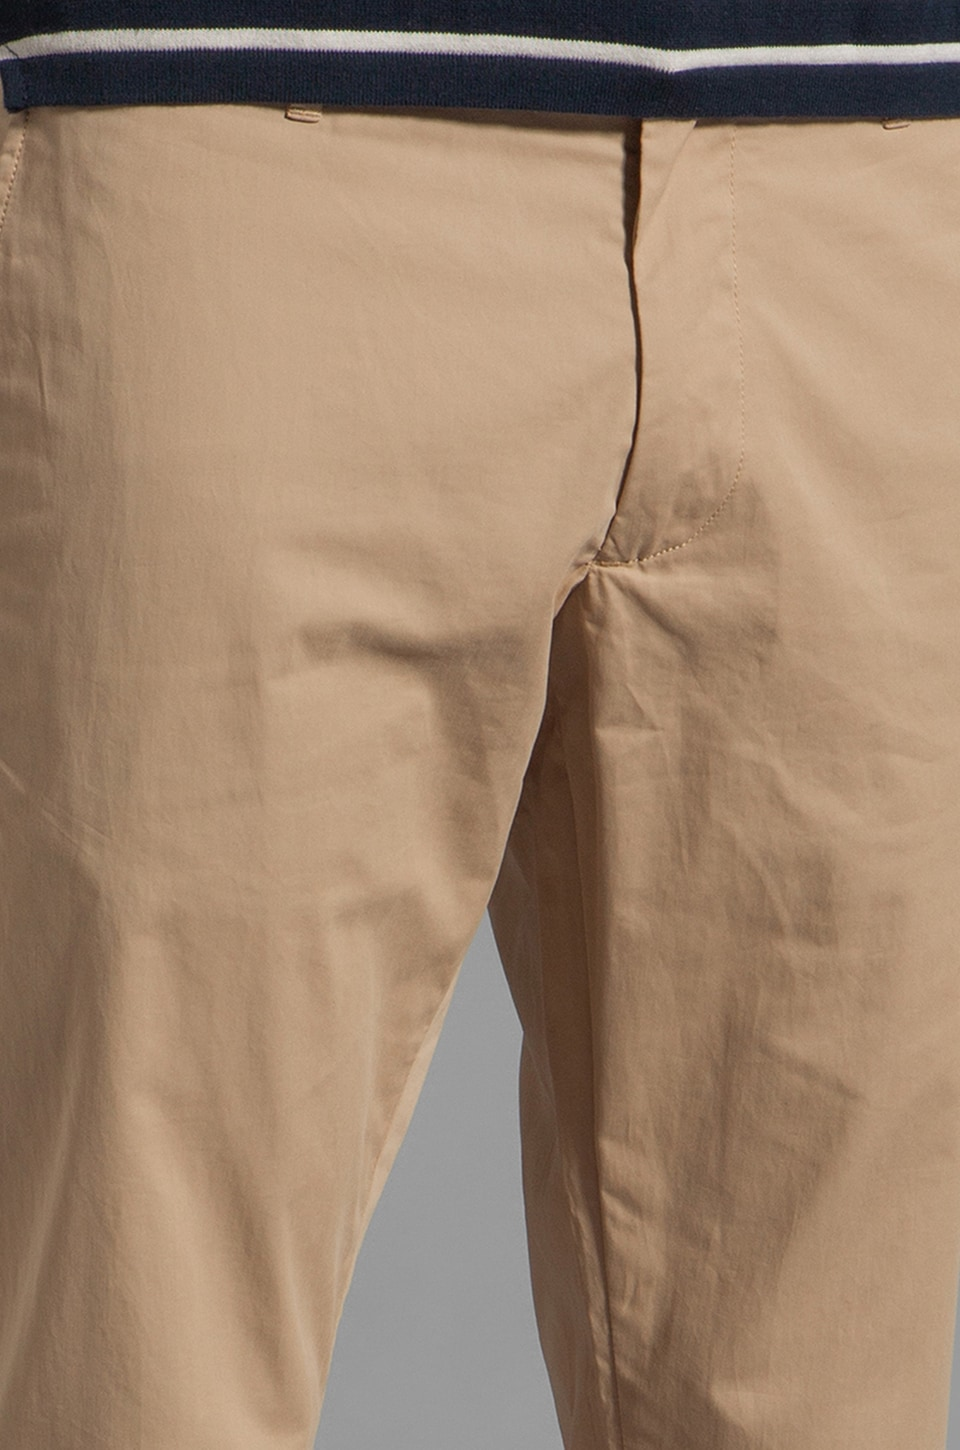 Marc by Marc Jacobs California Cotton Pant in Nomad Khaki